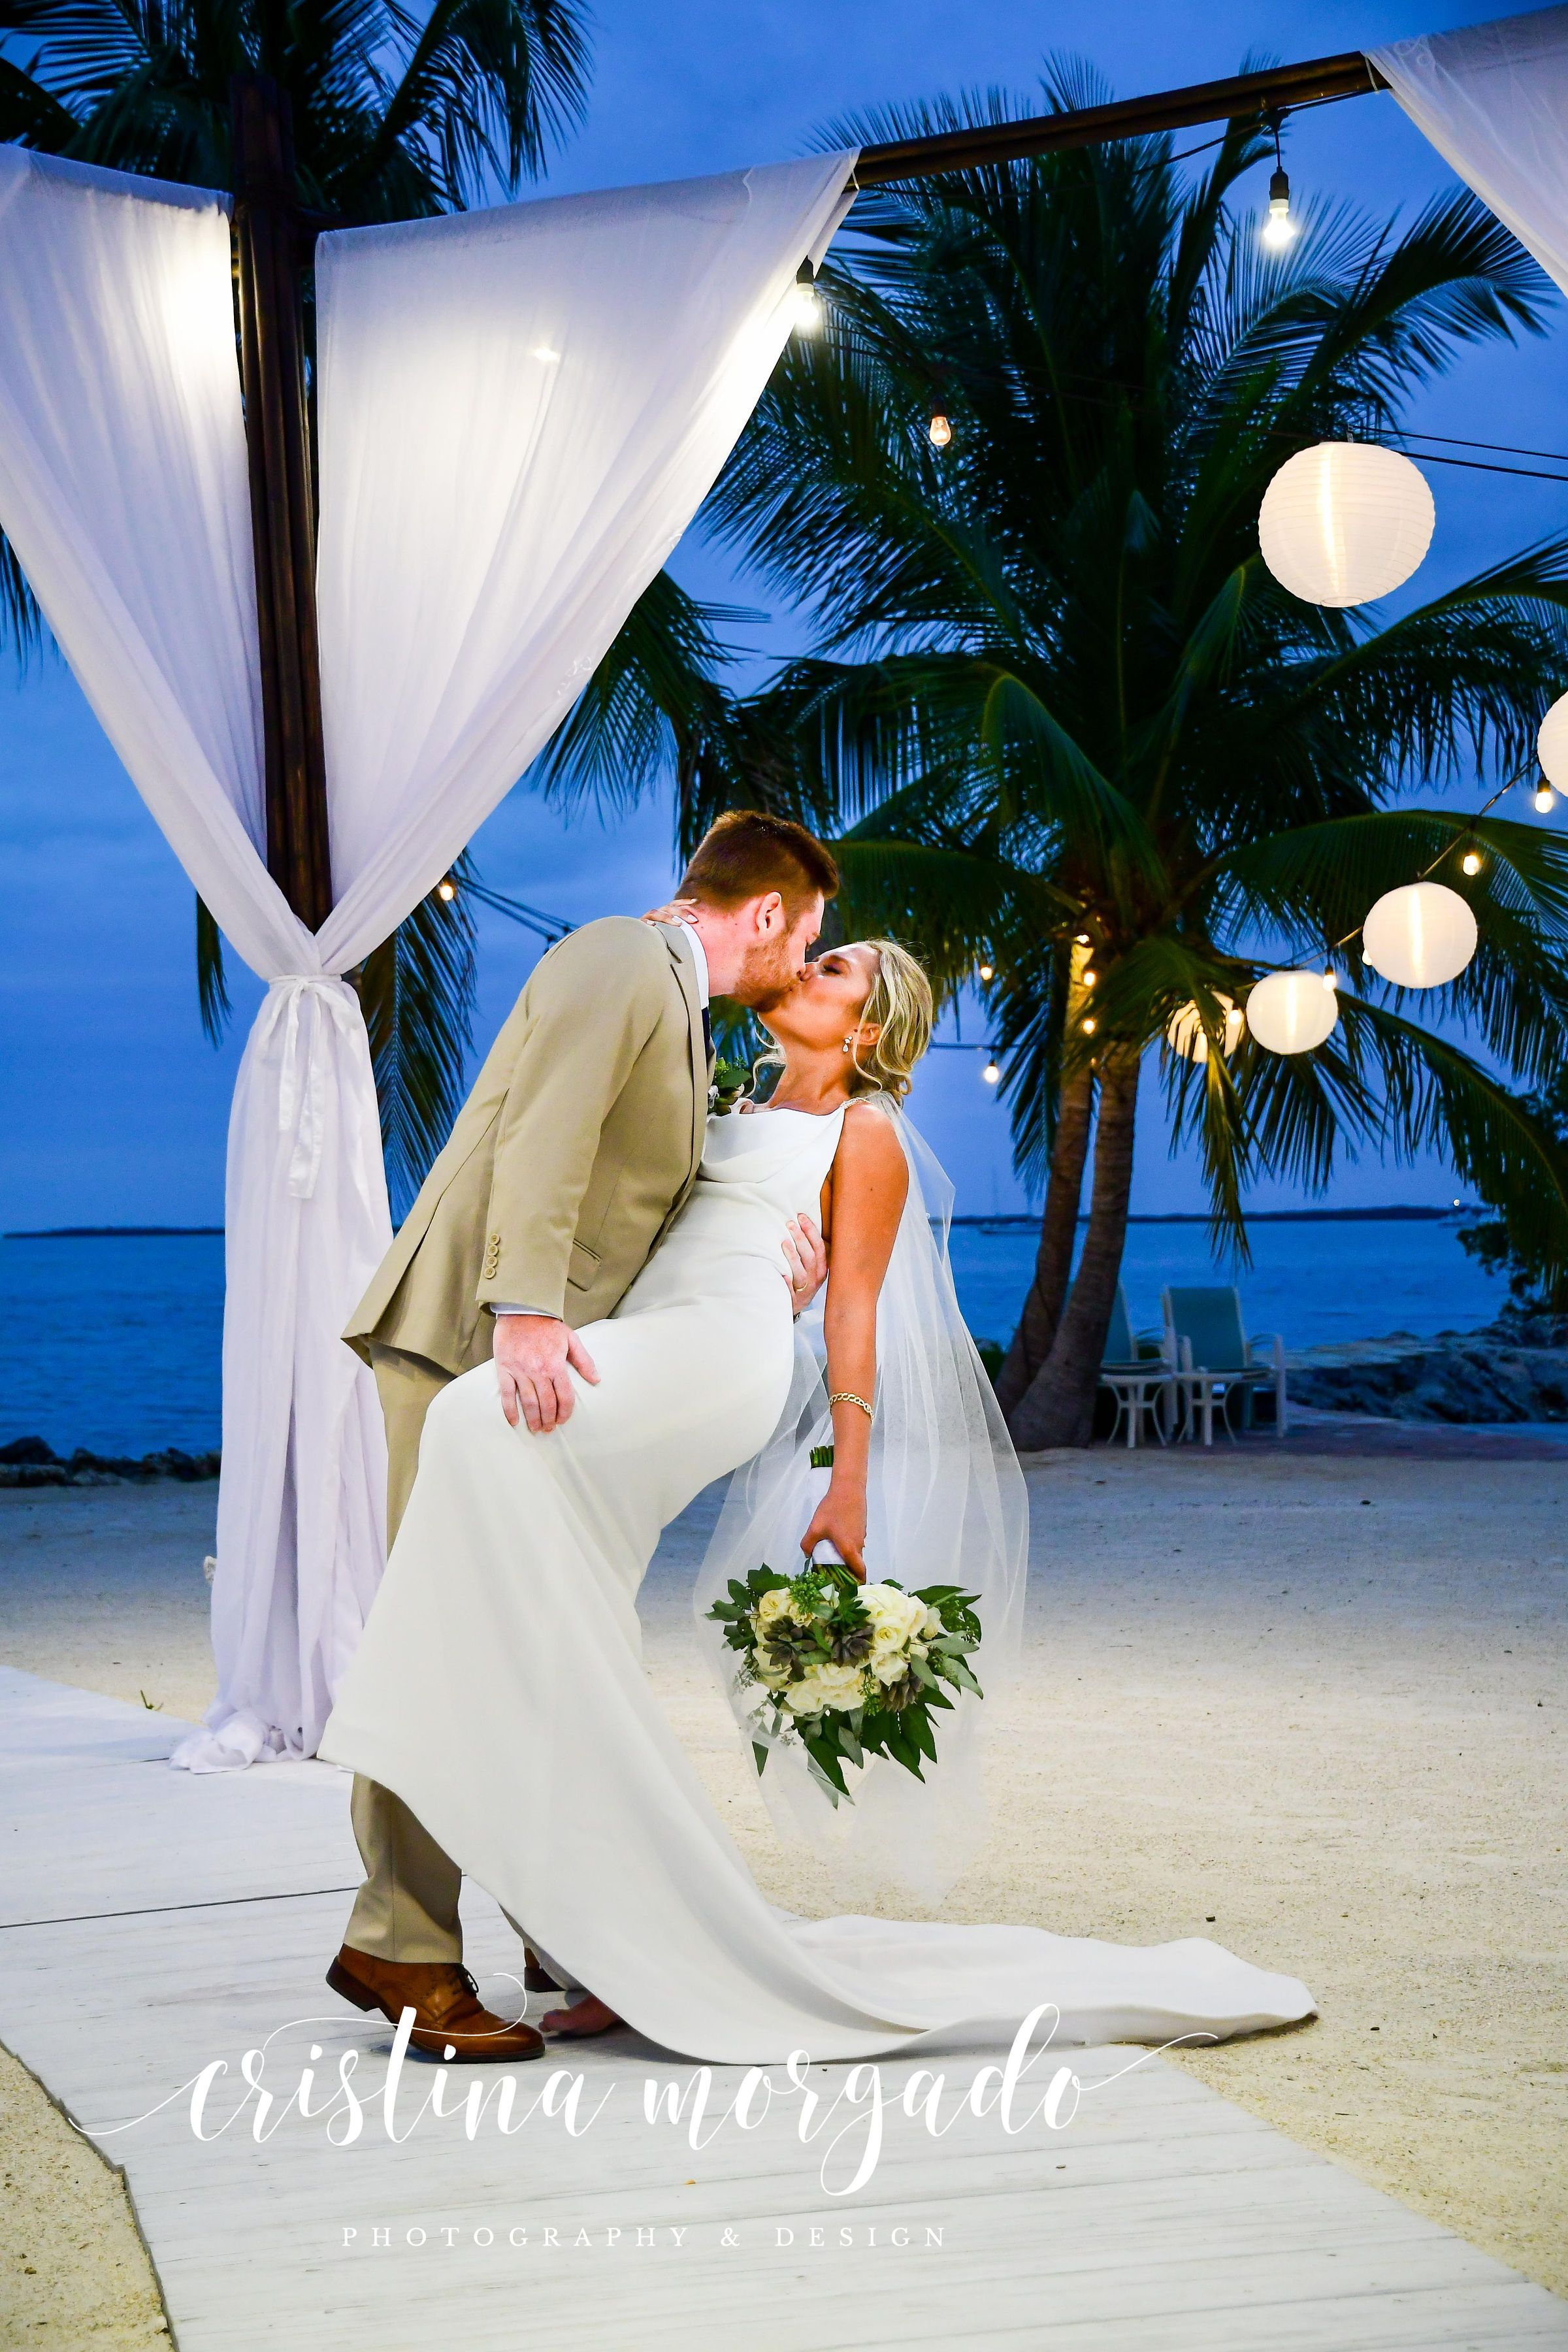 All Inclusive Wedding Packages Florida Romantic Beach Wedding Packages In 2020 Florida Wedding Venues Wedding Venues Wedding Venues Beach